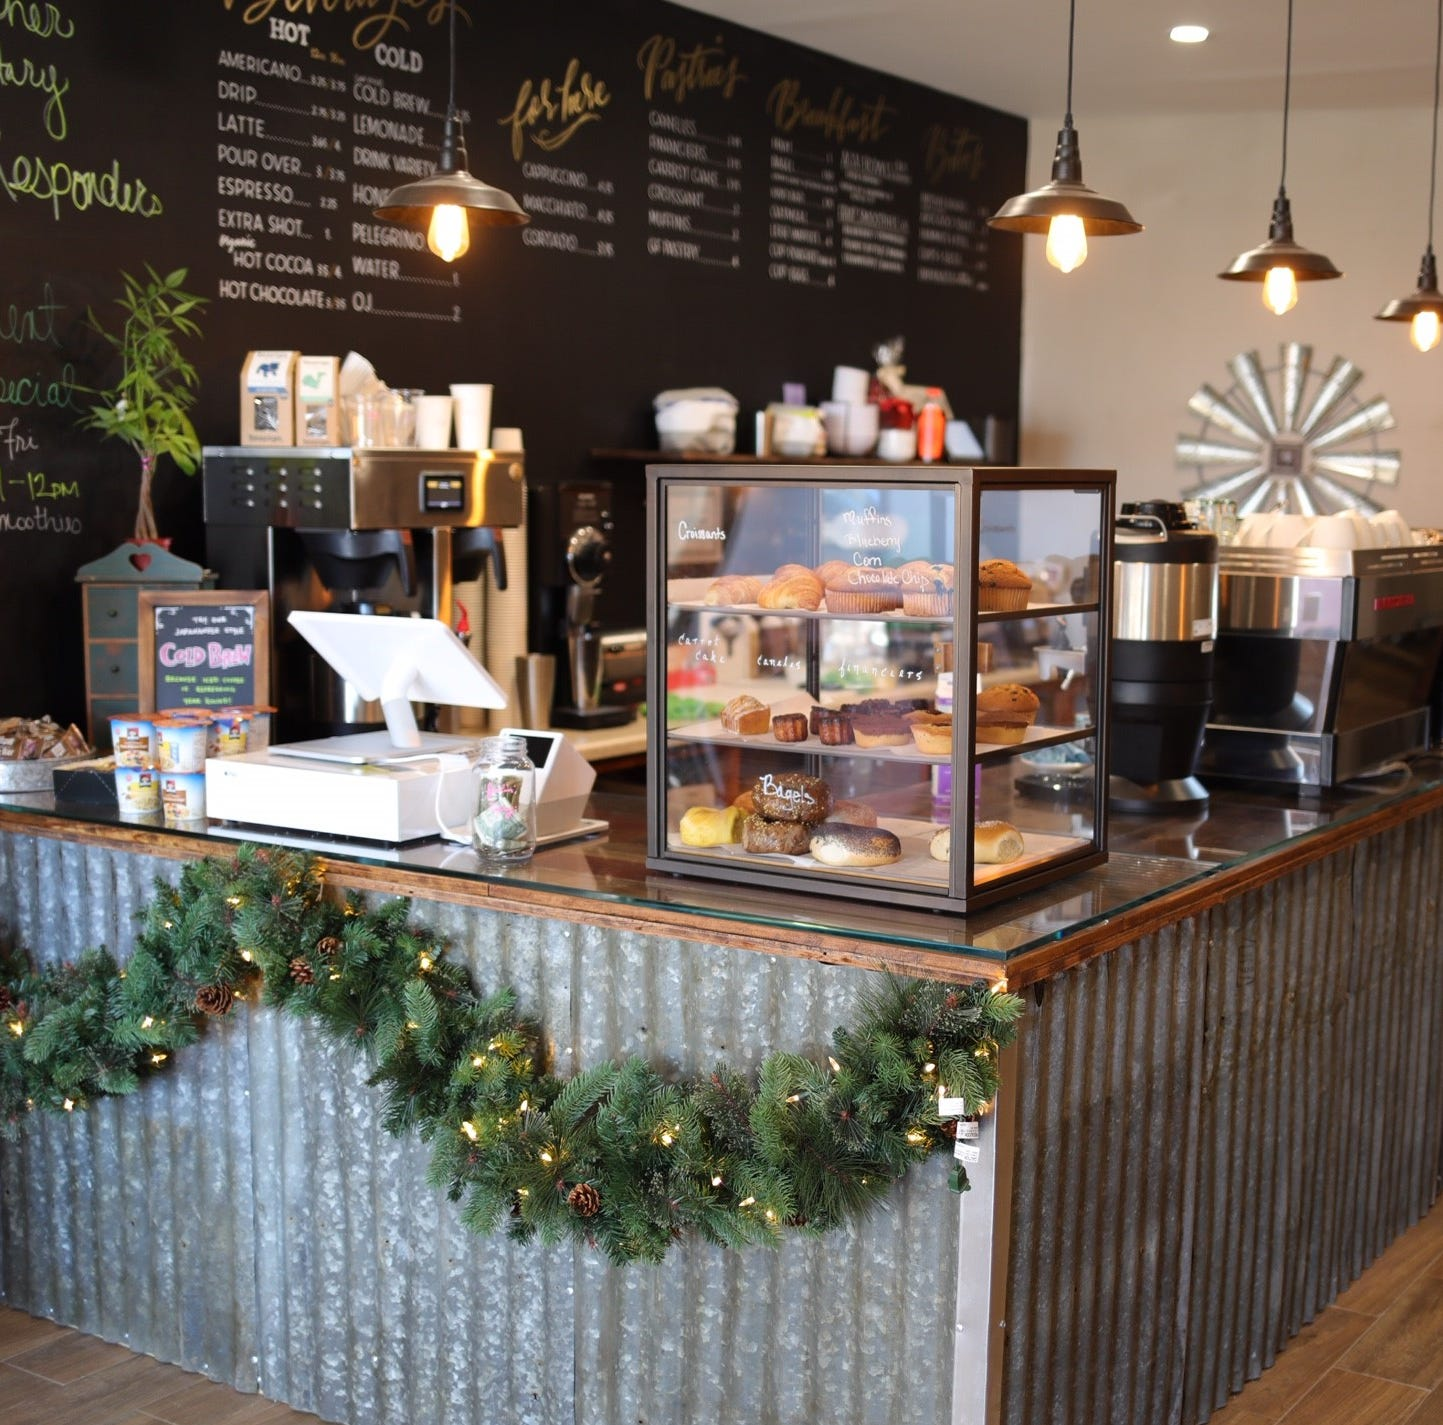 Now Open: Take-out or settle in at the cozy new cafe G.O.A.T. Coffee in Lyndhurst